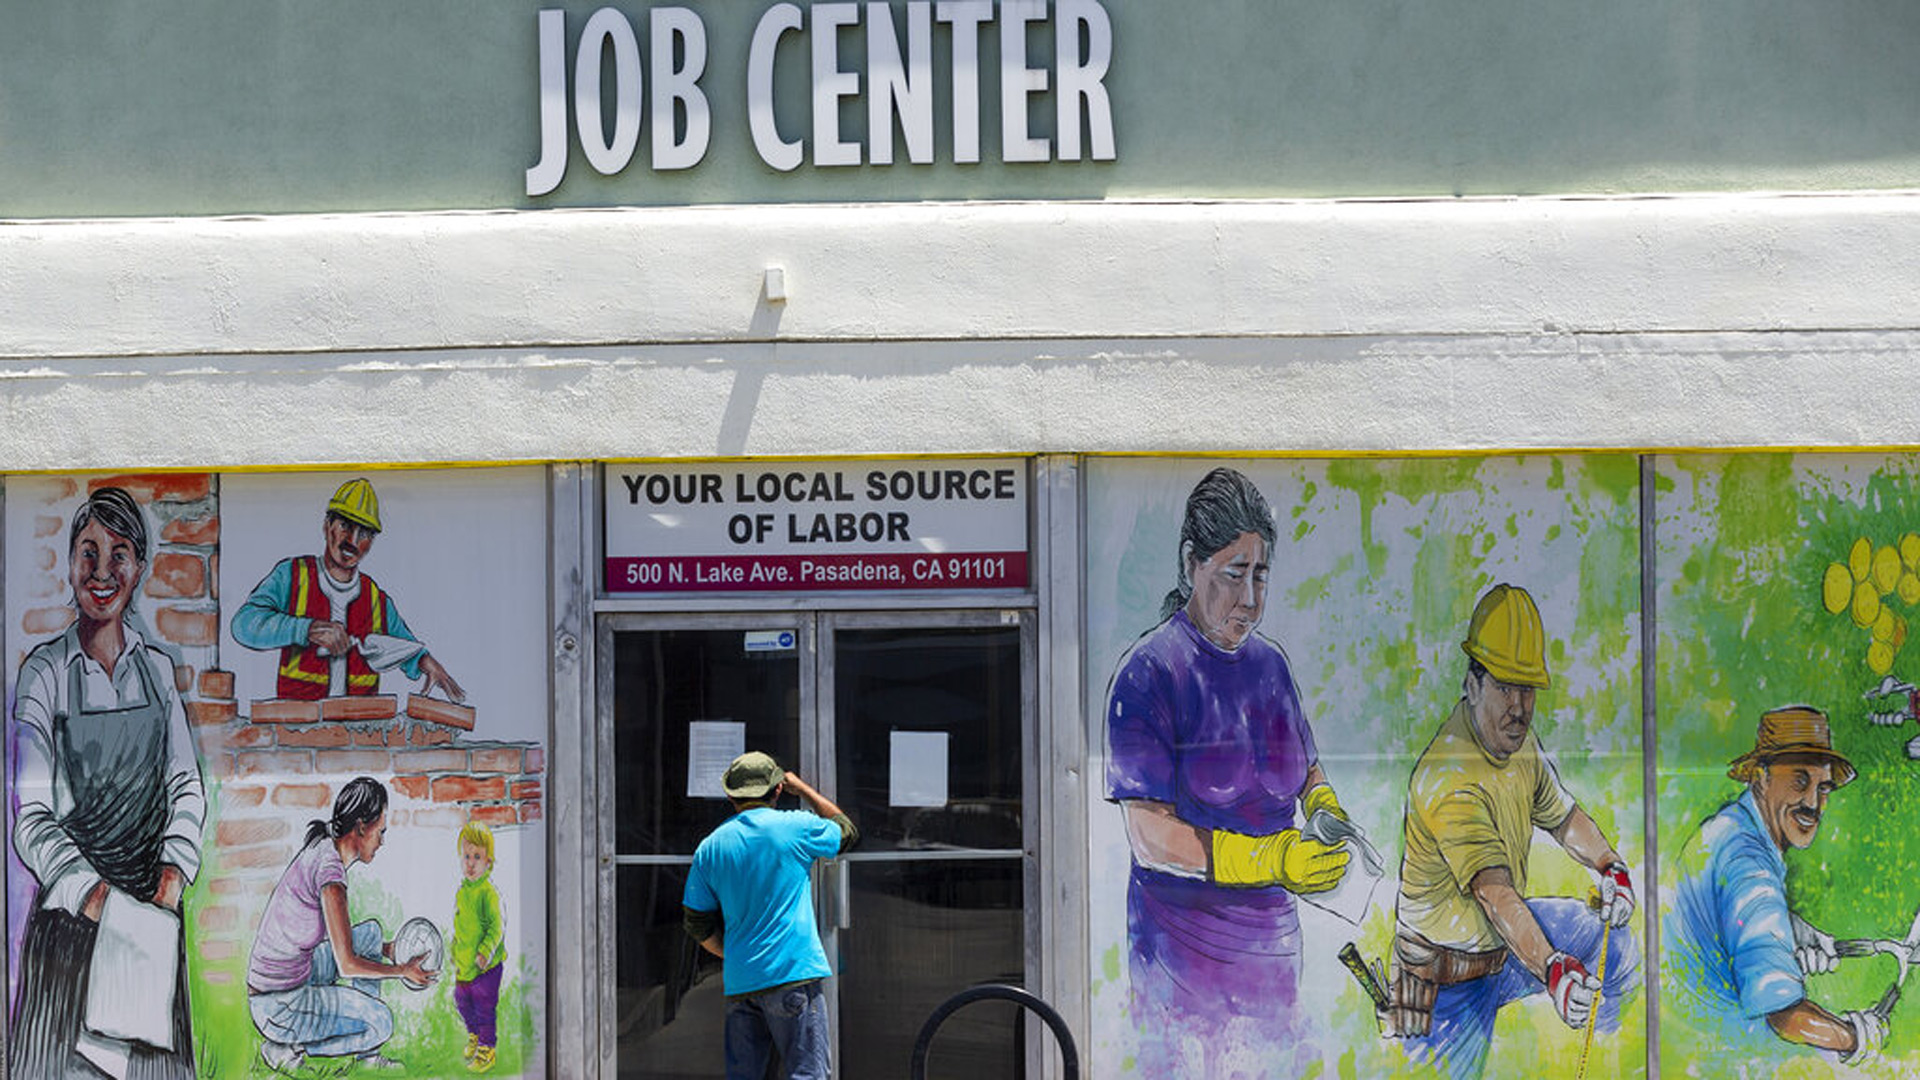 FILE - In this May 7, 2020, file photo, a person looks inside the closed doors of the Pasadena Community Job Center in Pasadena, Calif., during the coronavirus outbreak. (AP Photo/Damian Dovarganes, File)